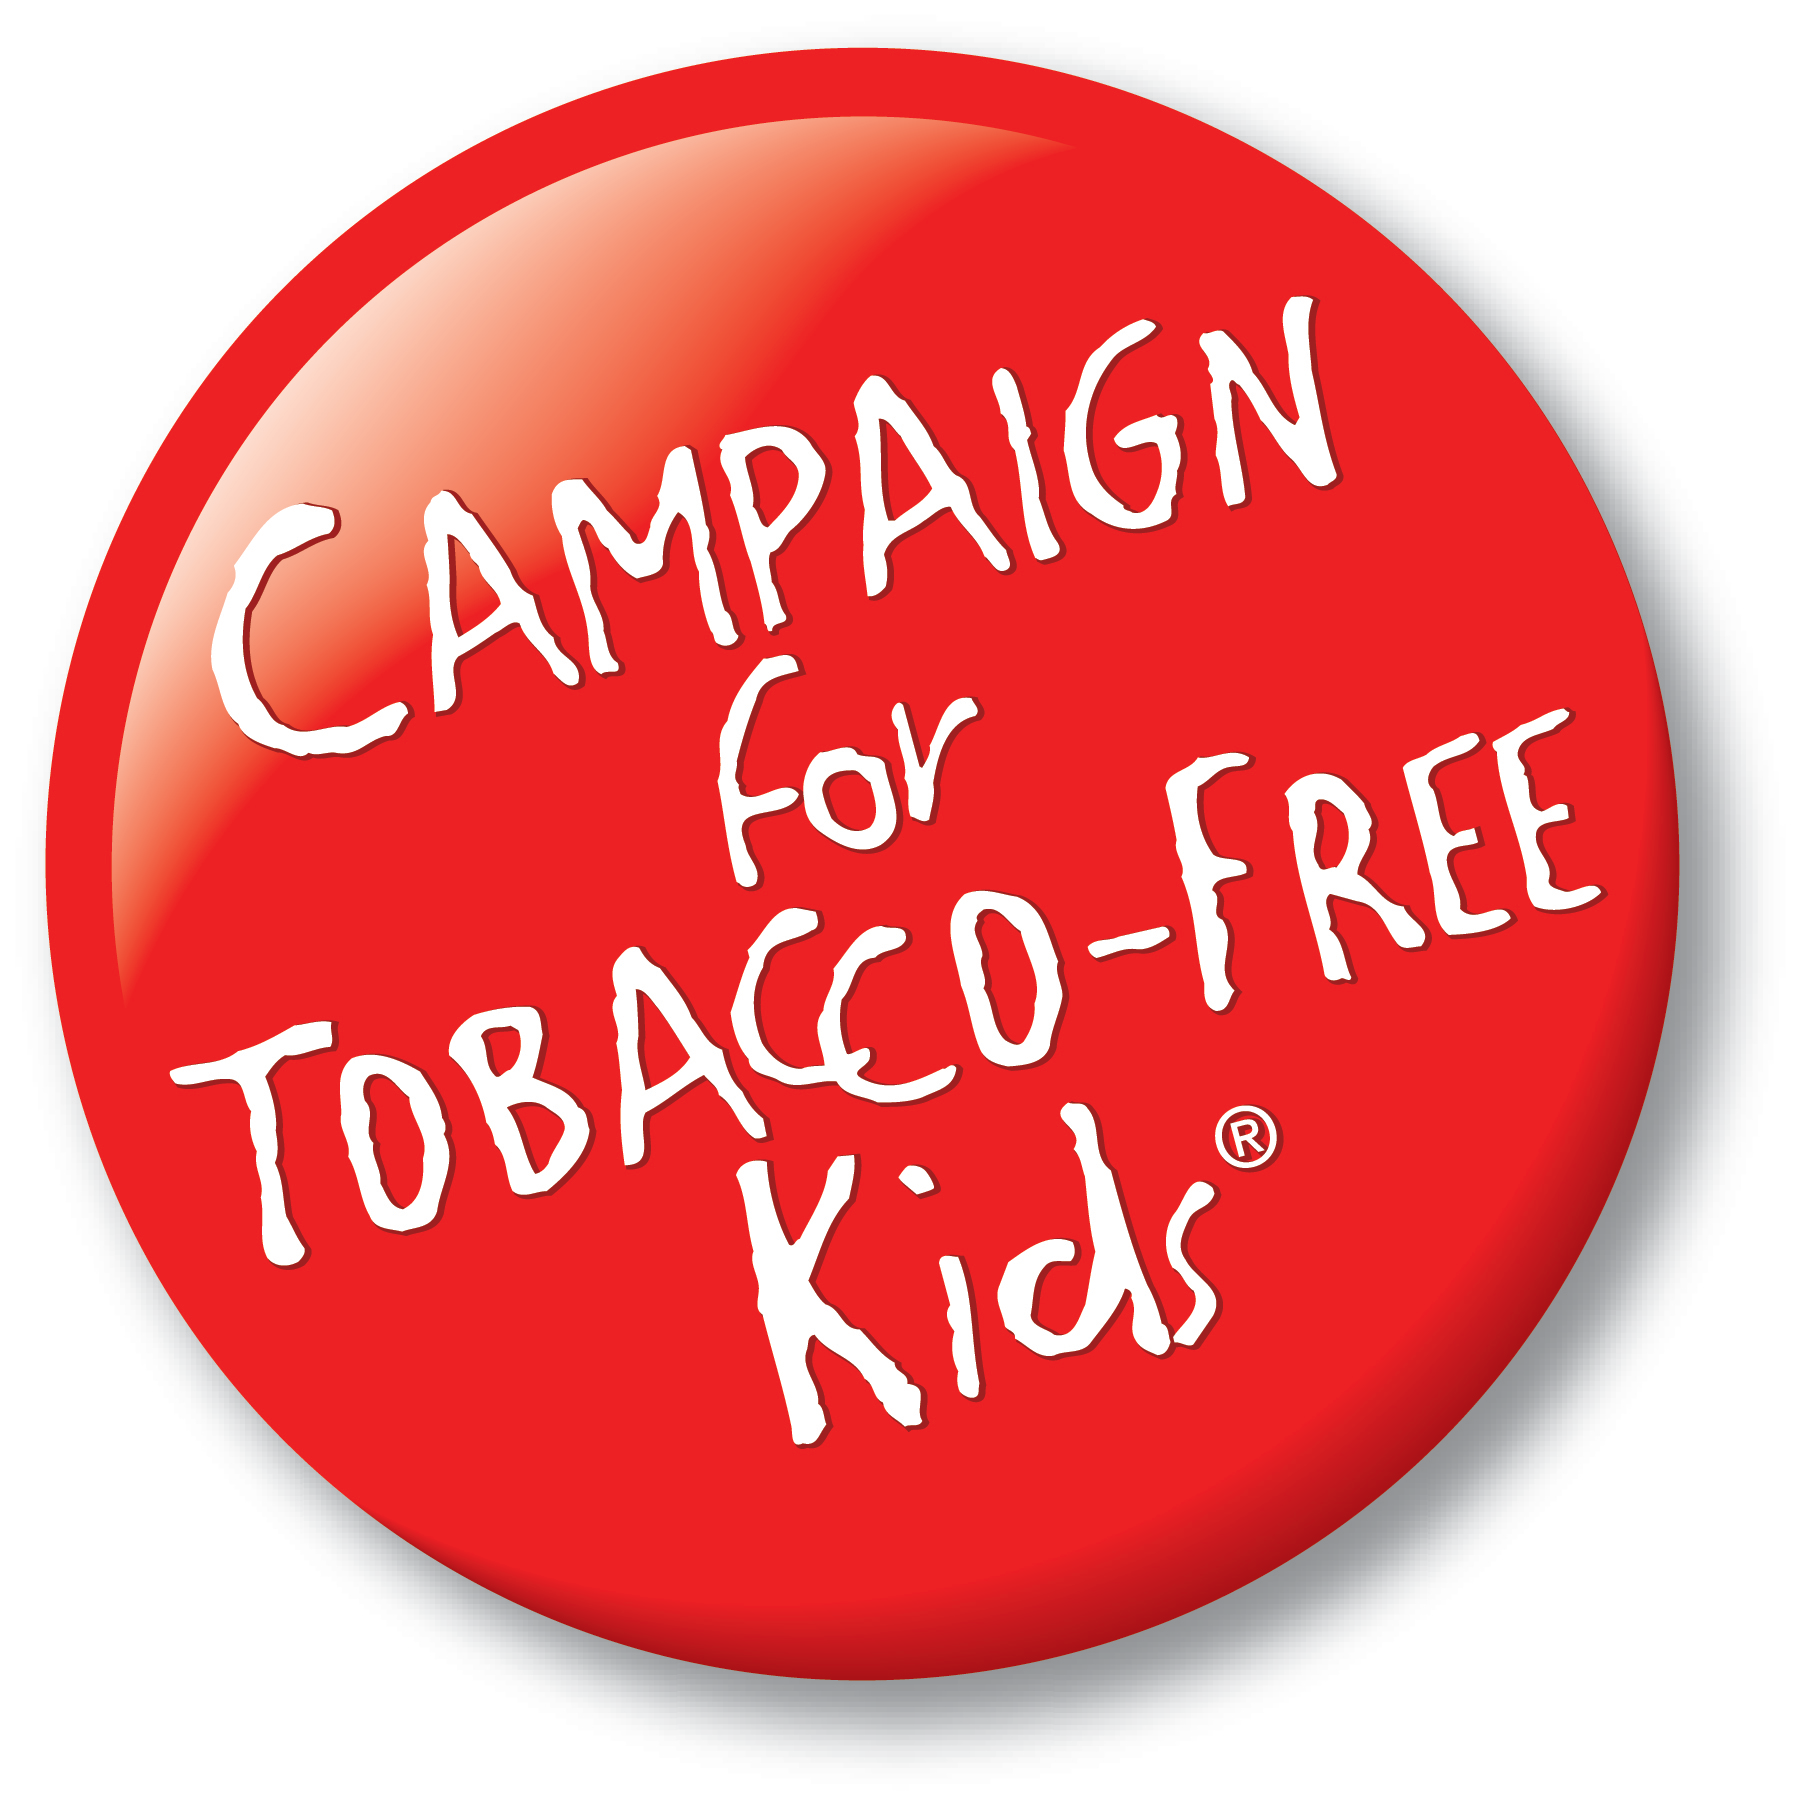 Logo of Campaign for Tobacco-Free Kids